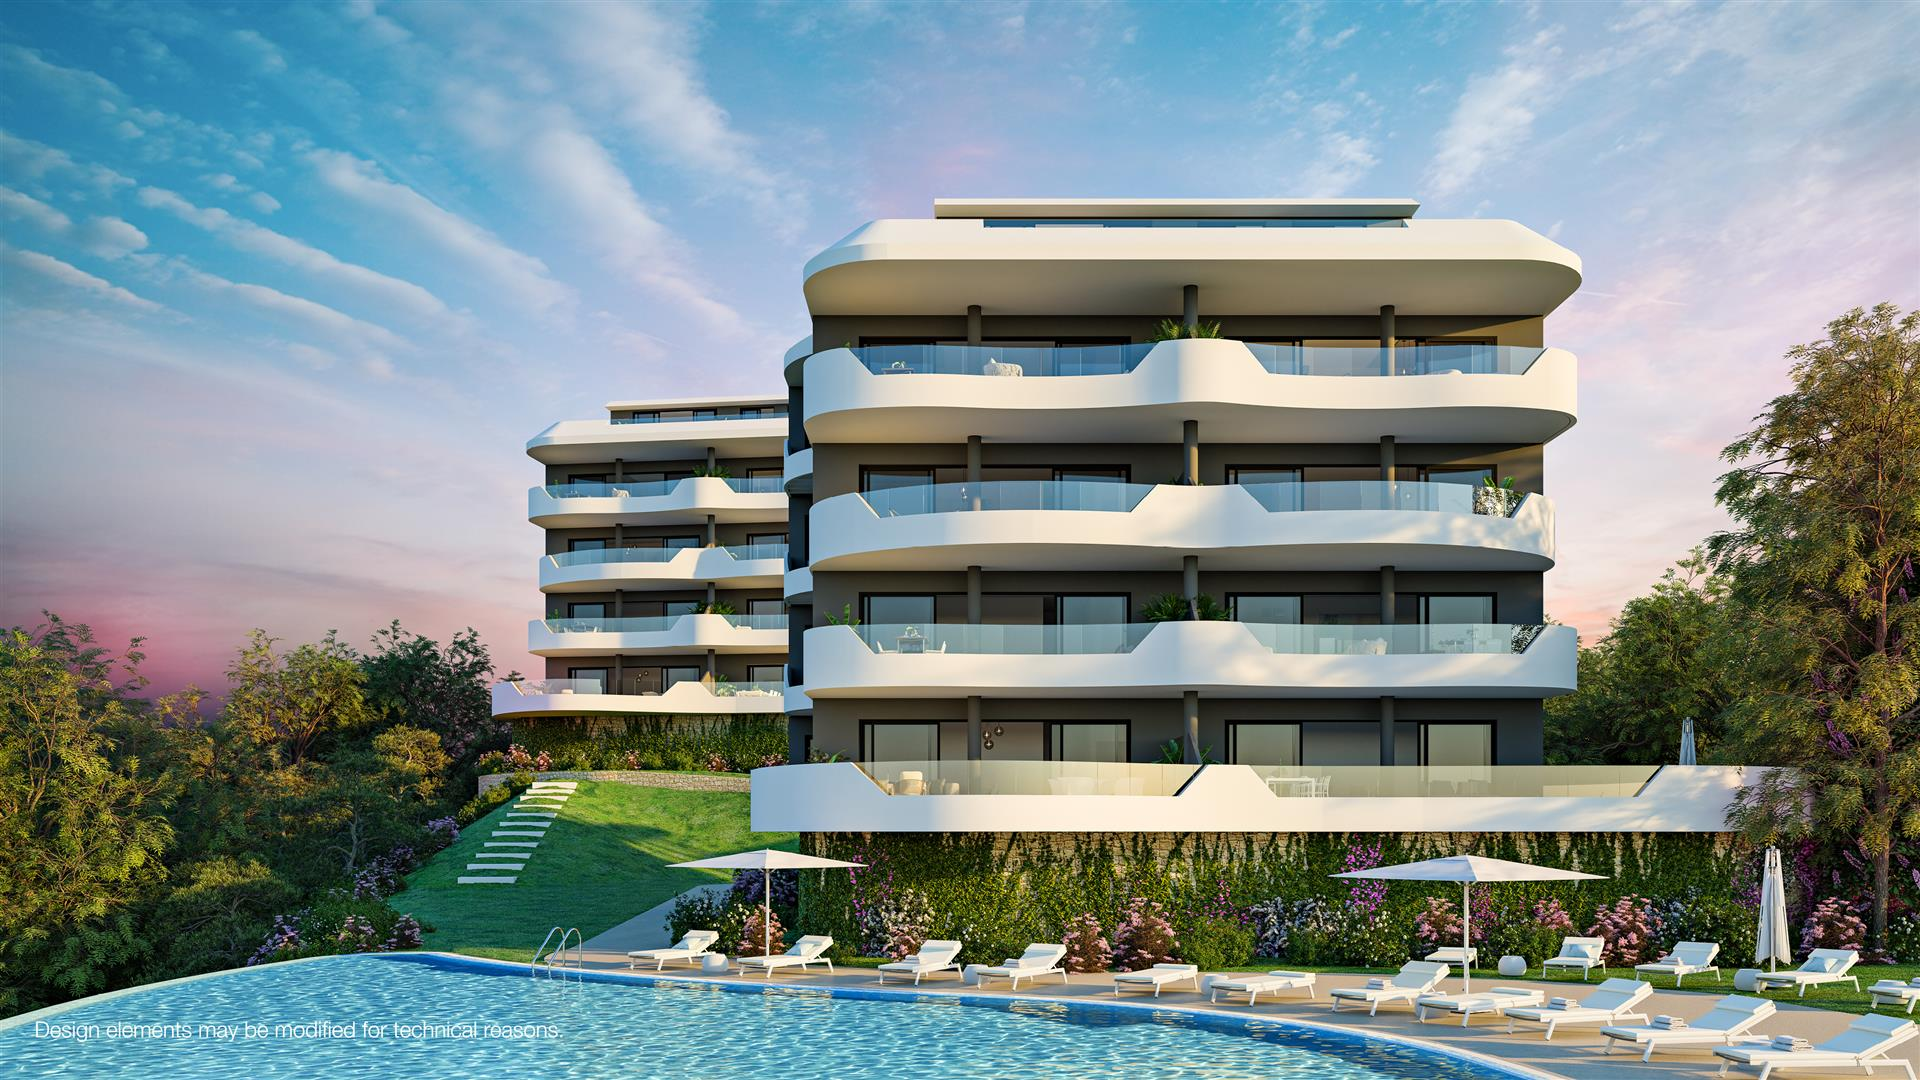 Apartment for Sale in Higueron West Phase 11